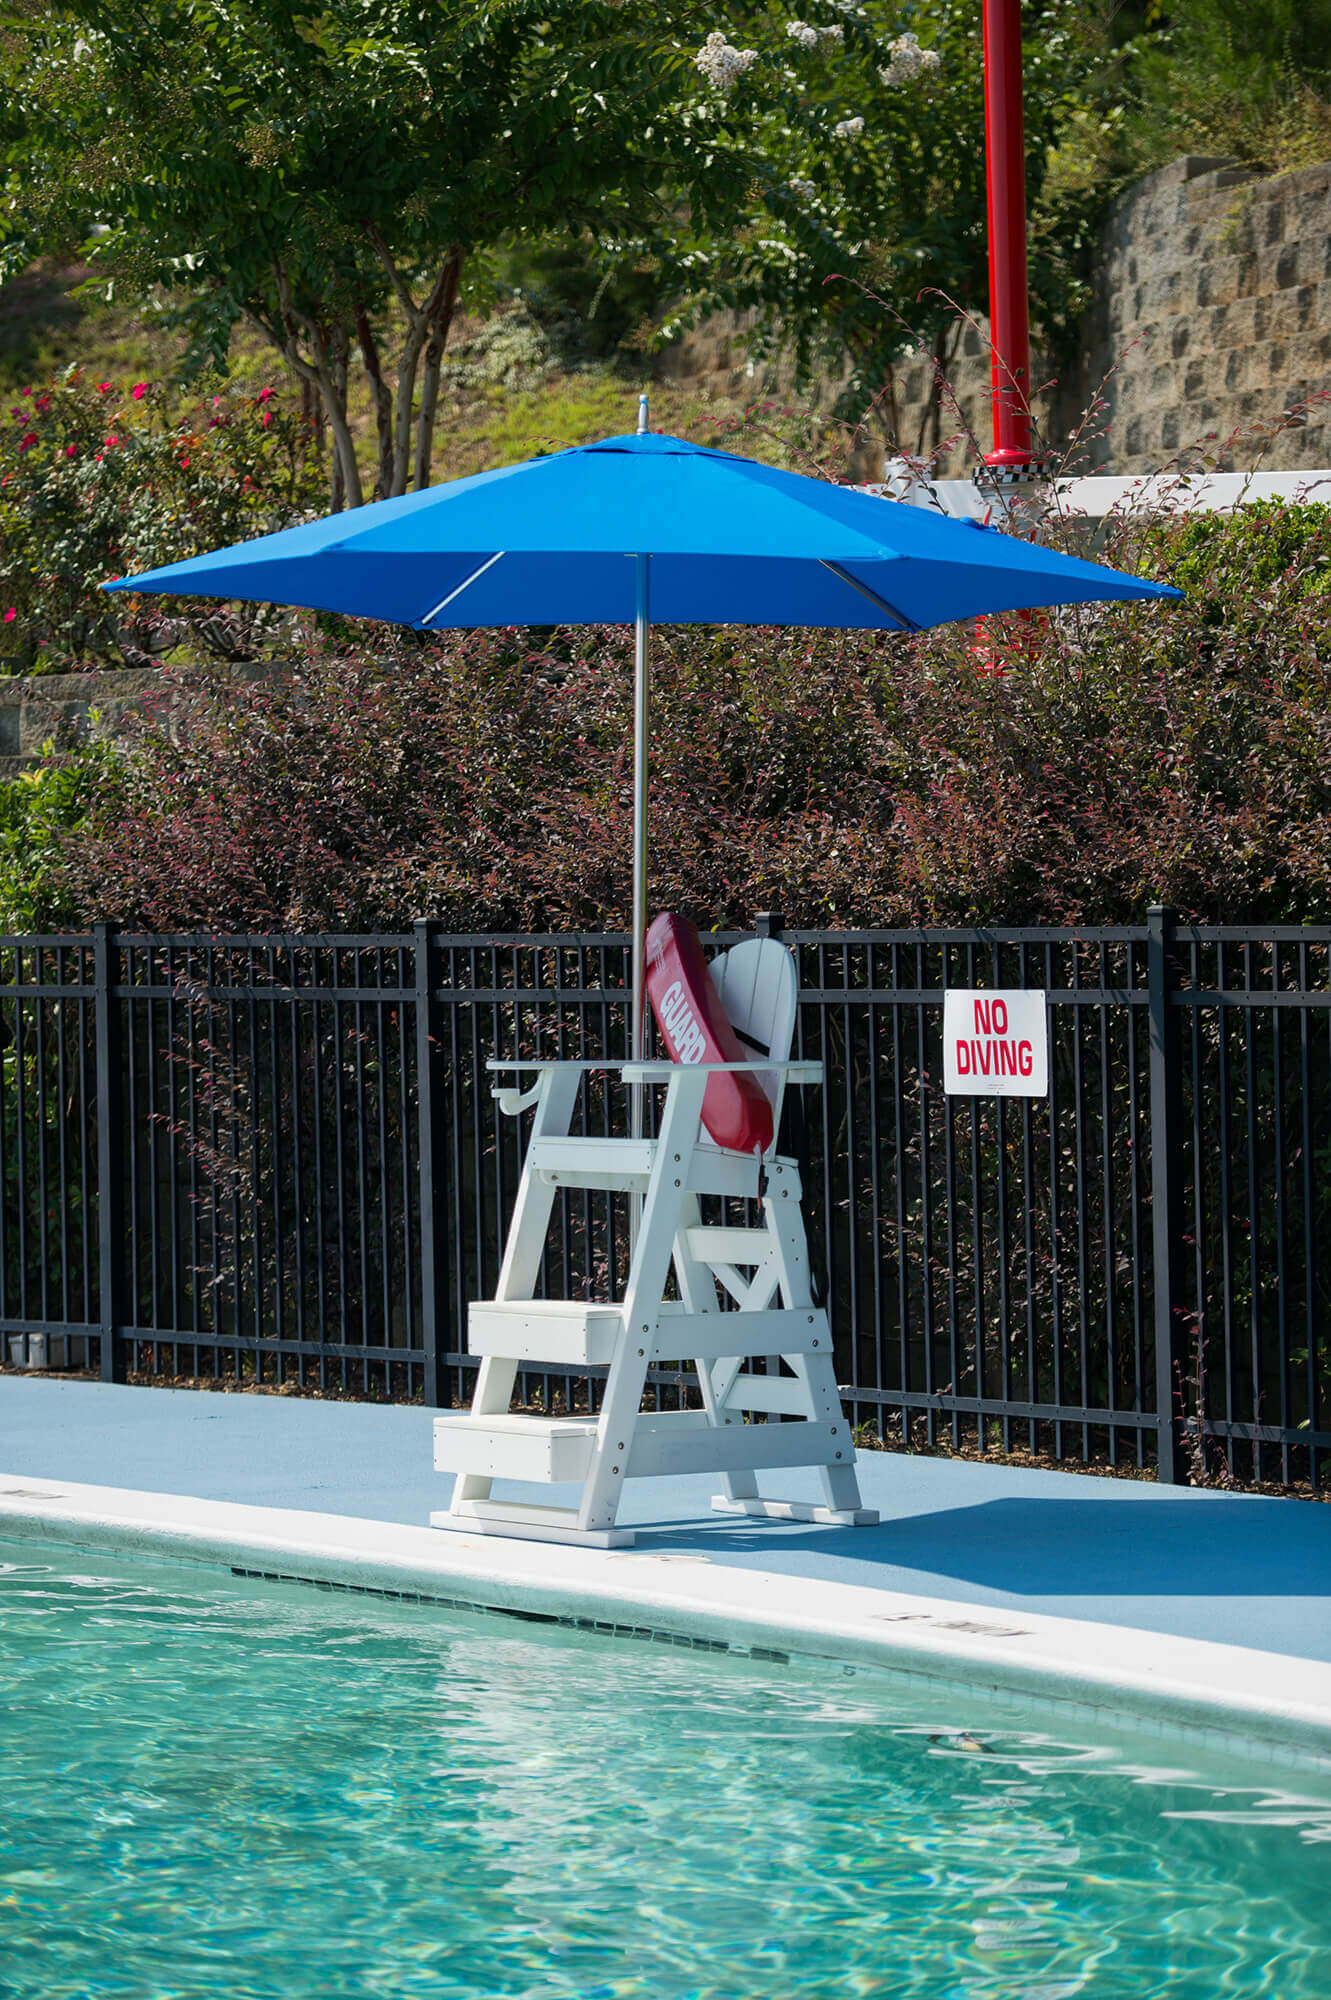 A lifeguard stand is shaded by a bright blue umbrella